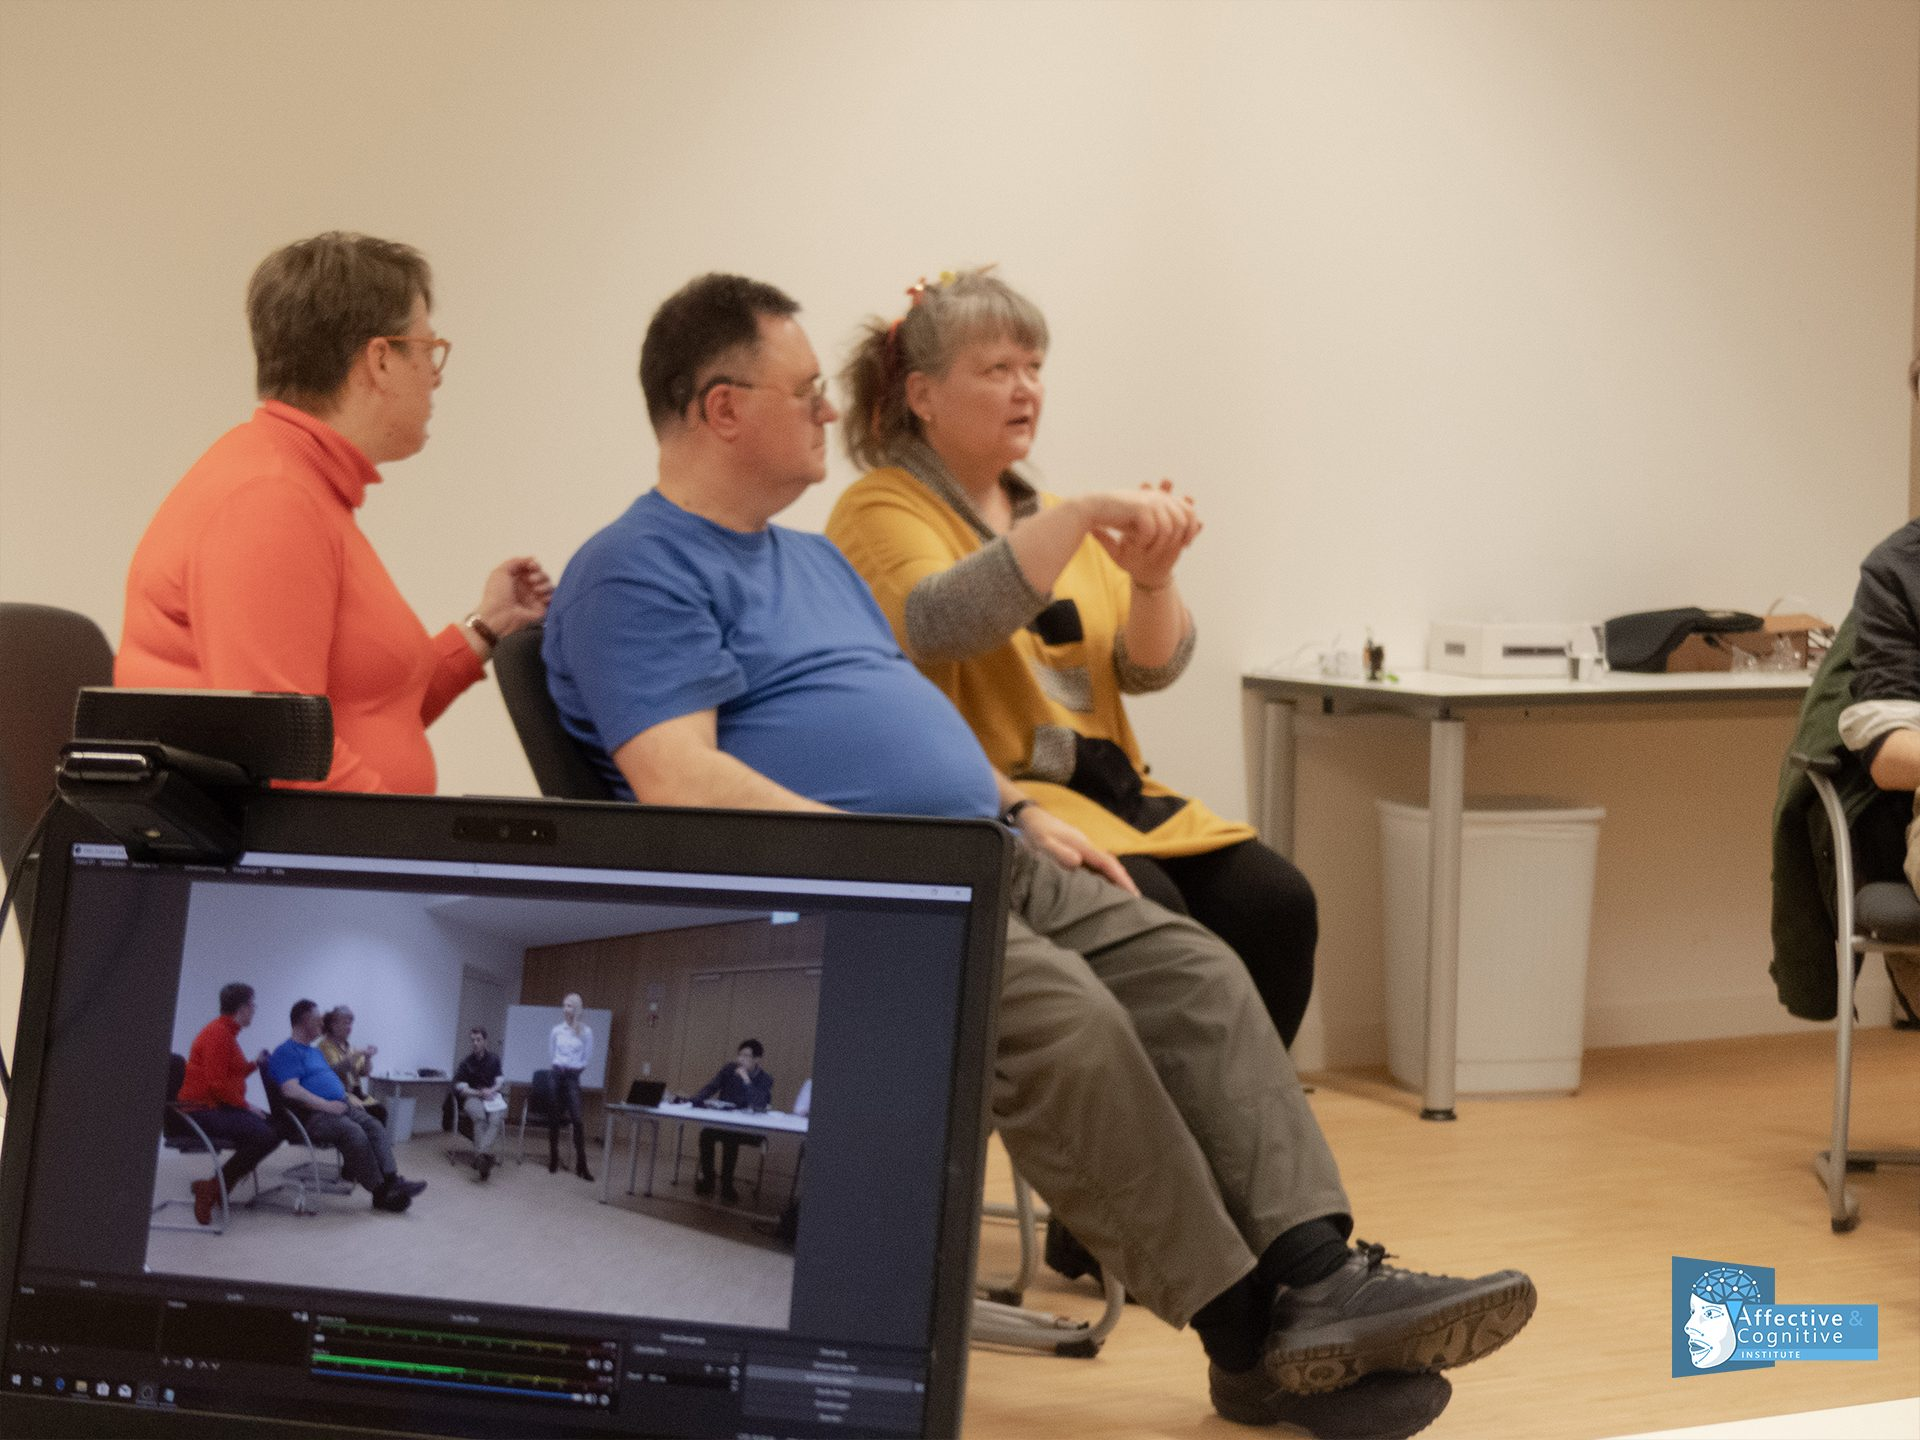 An image of the setup of our participatory design session